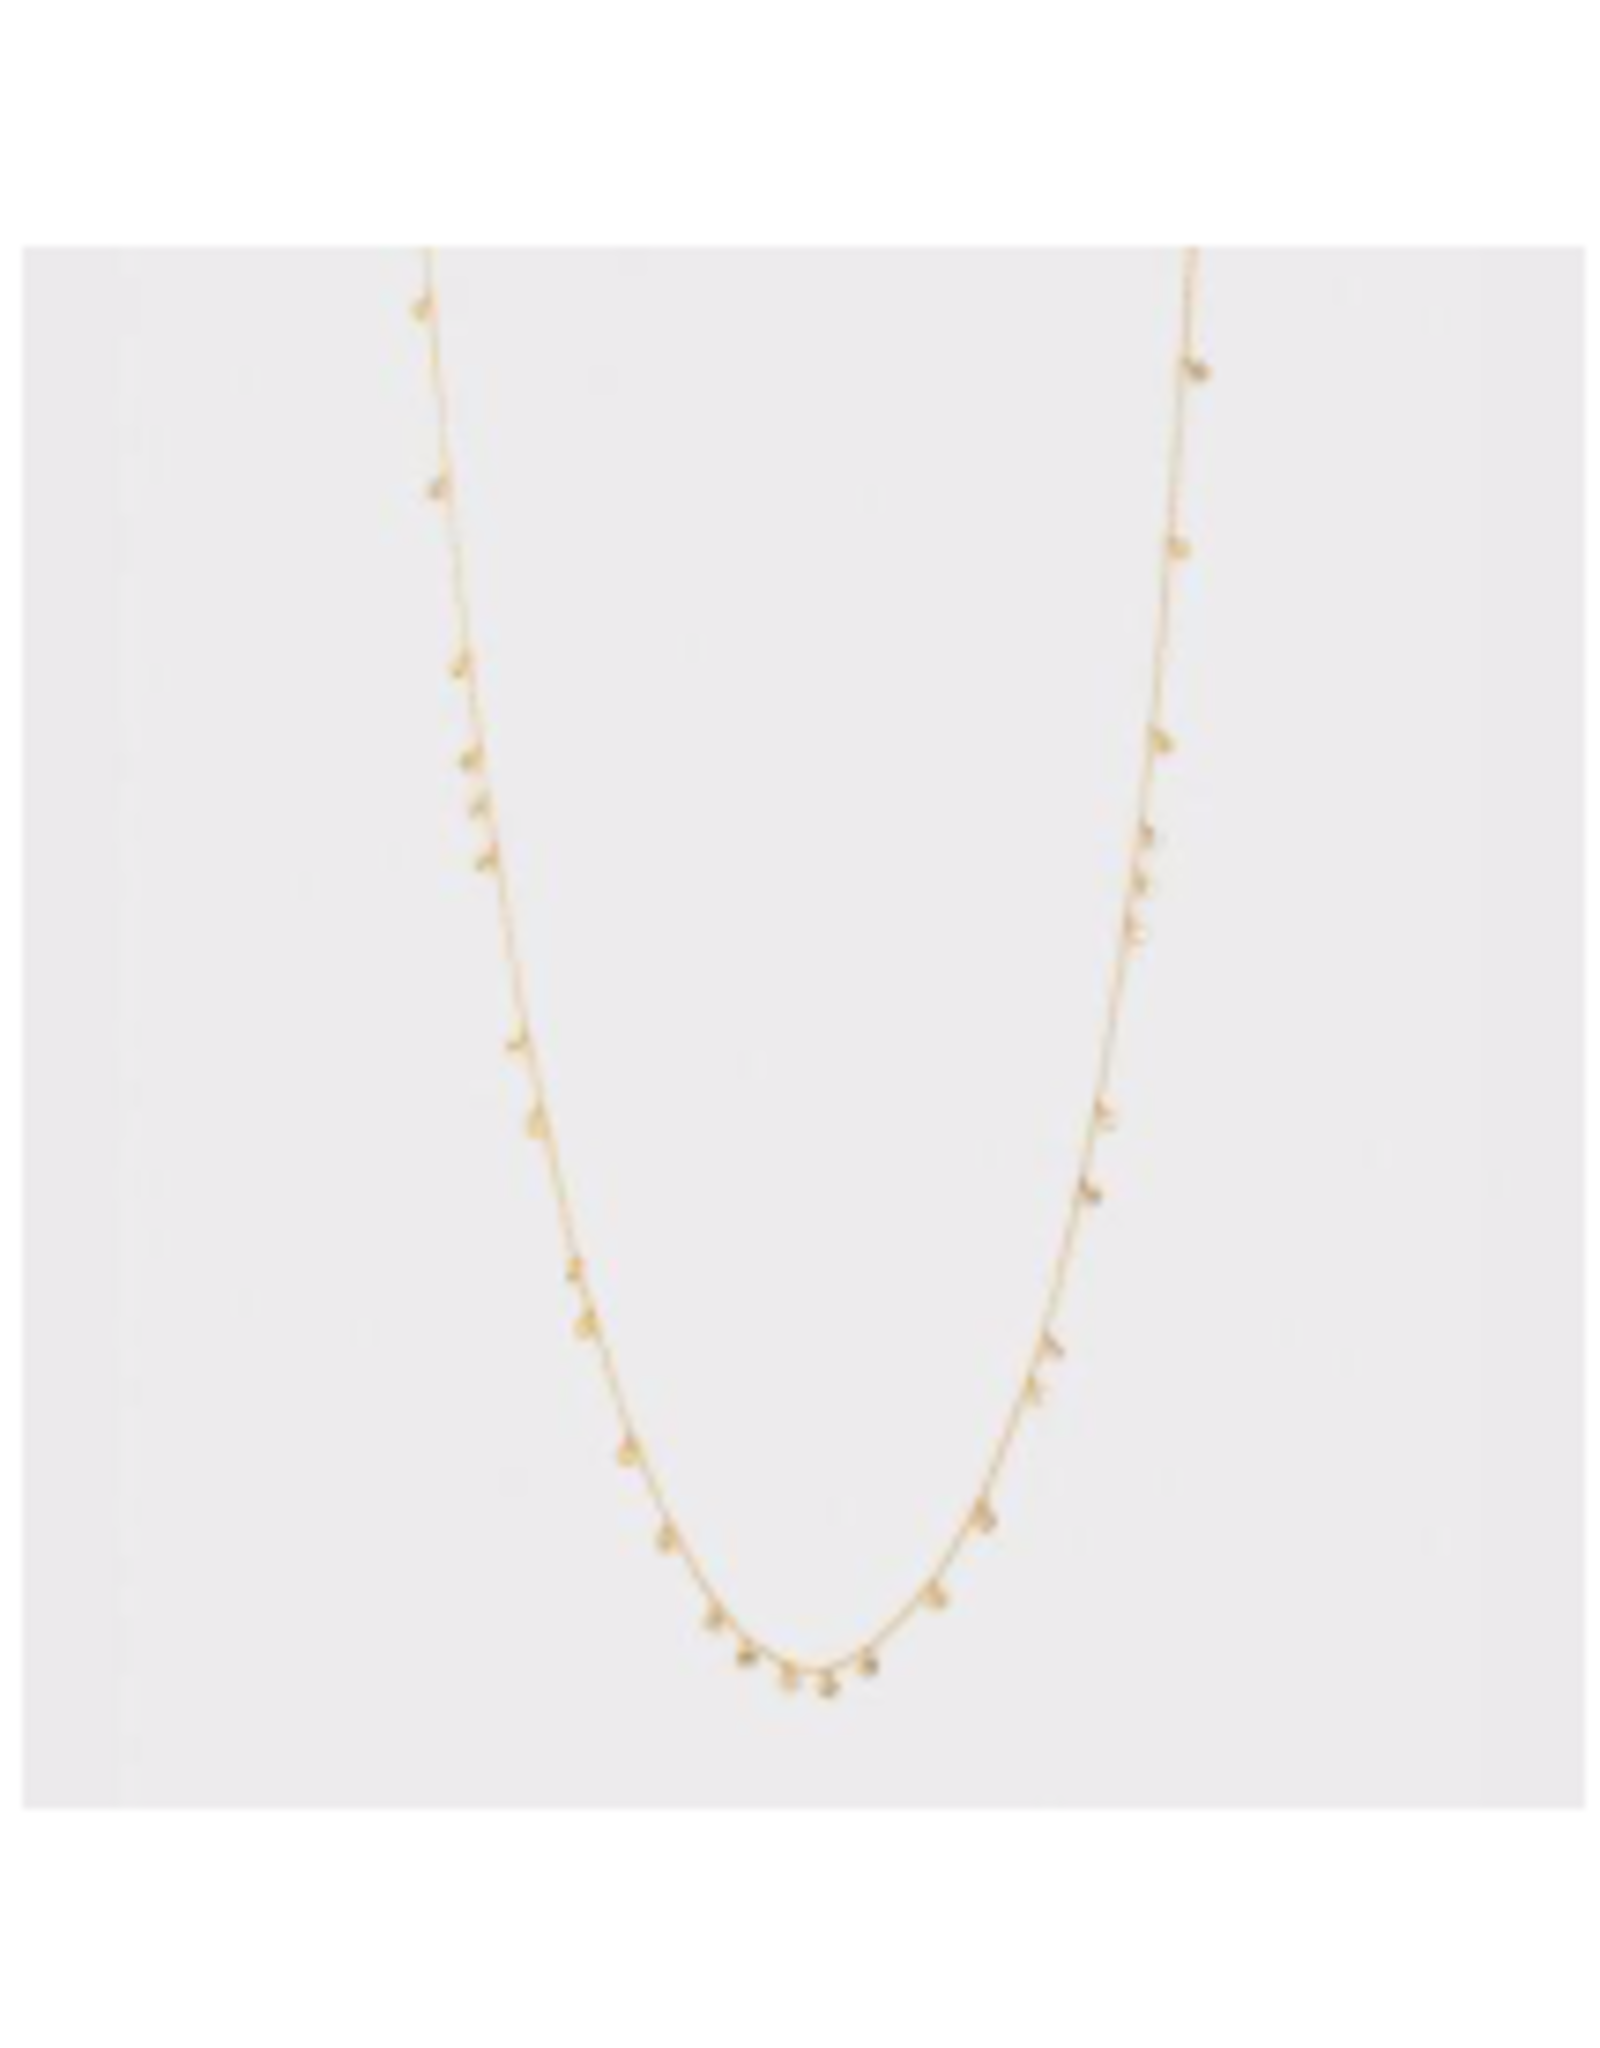 Chloe Mini Long Necklace - gold